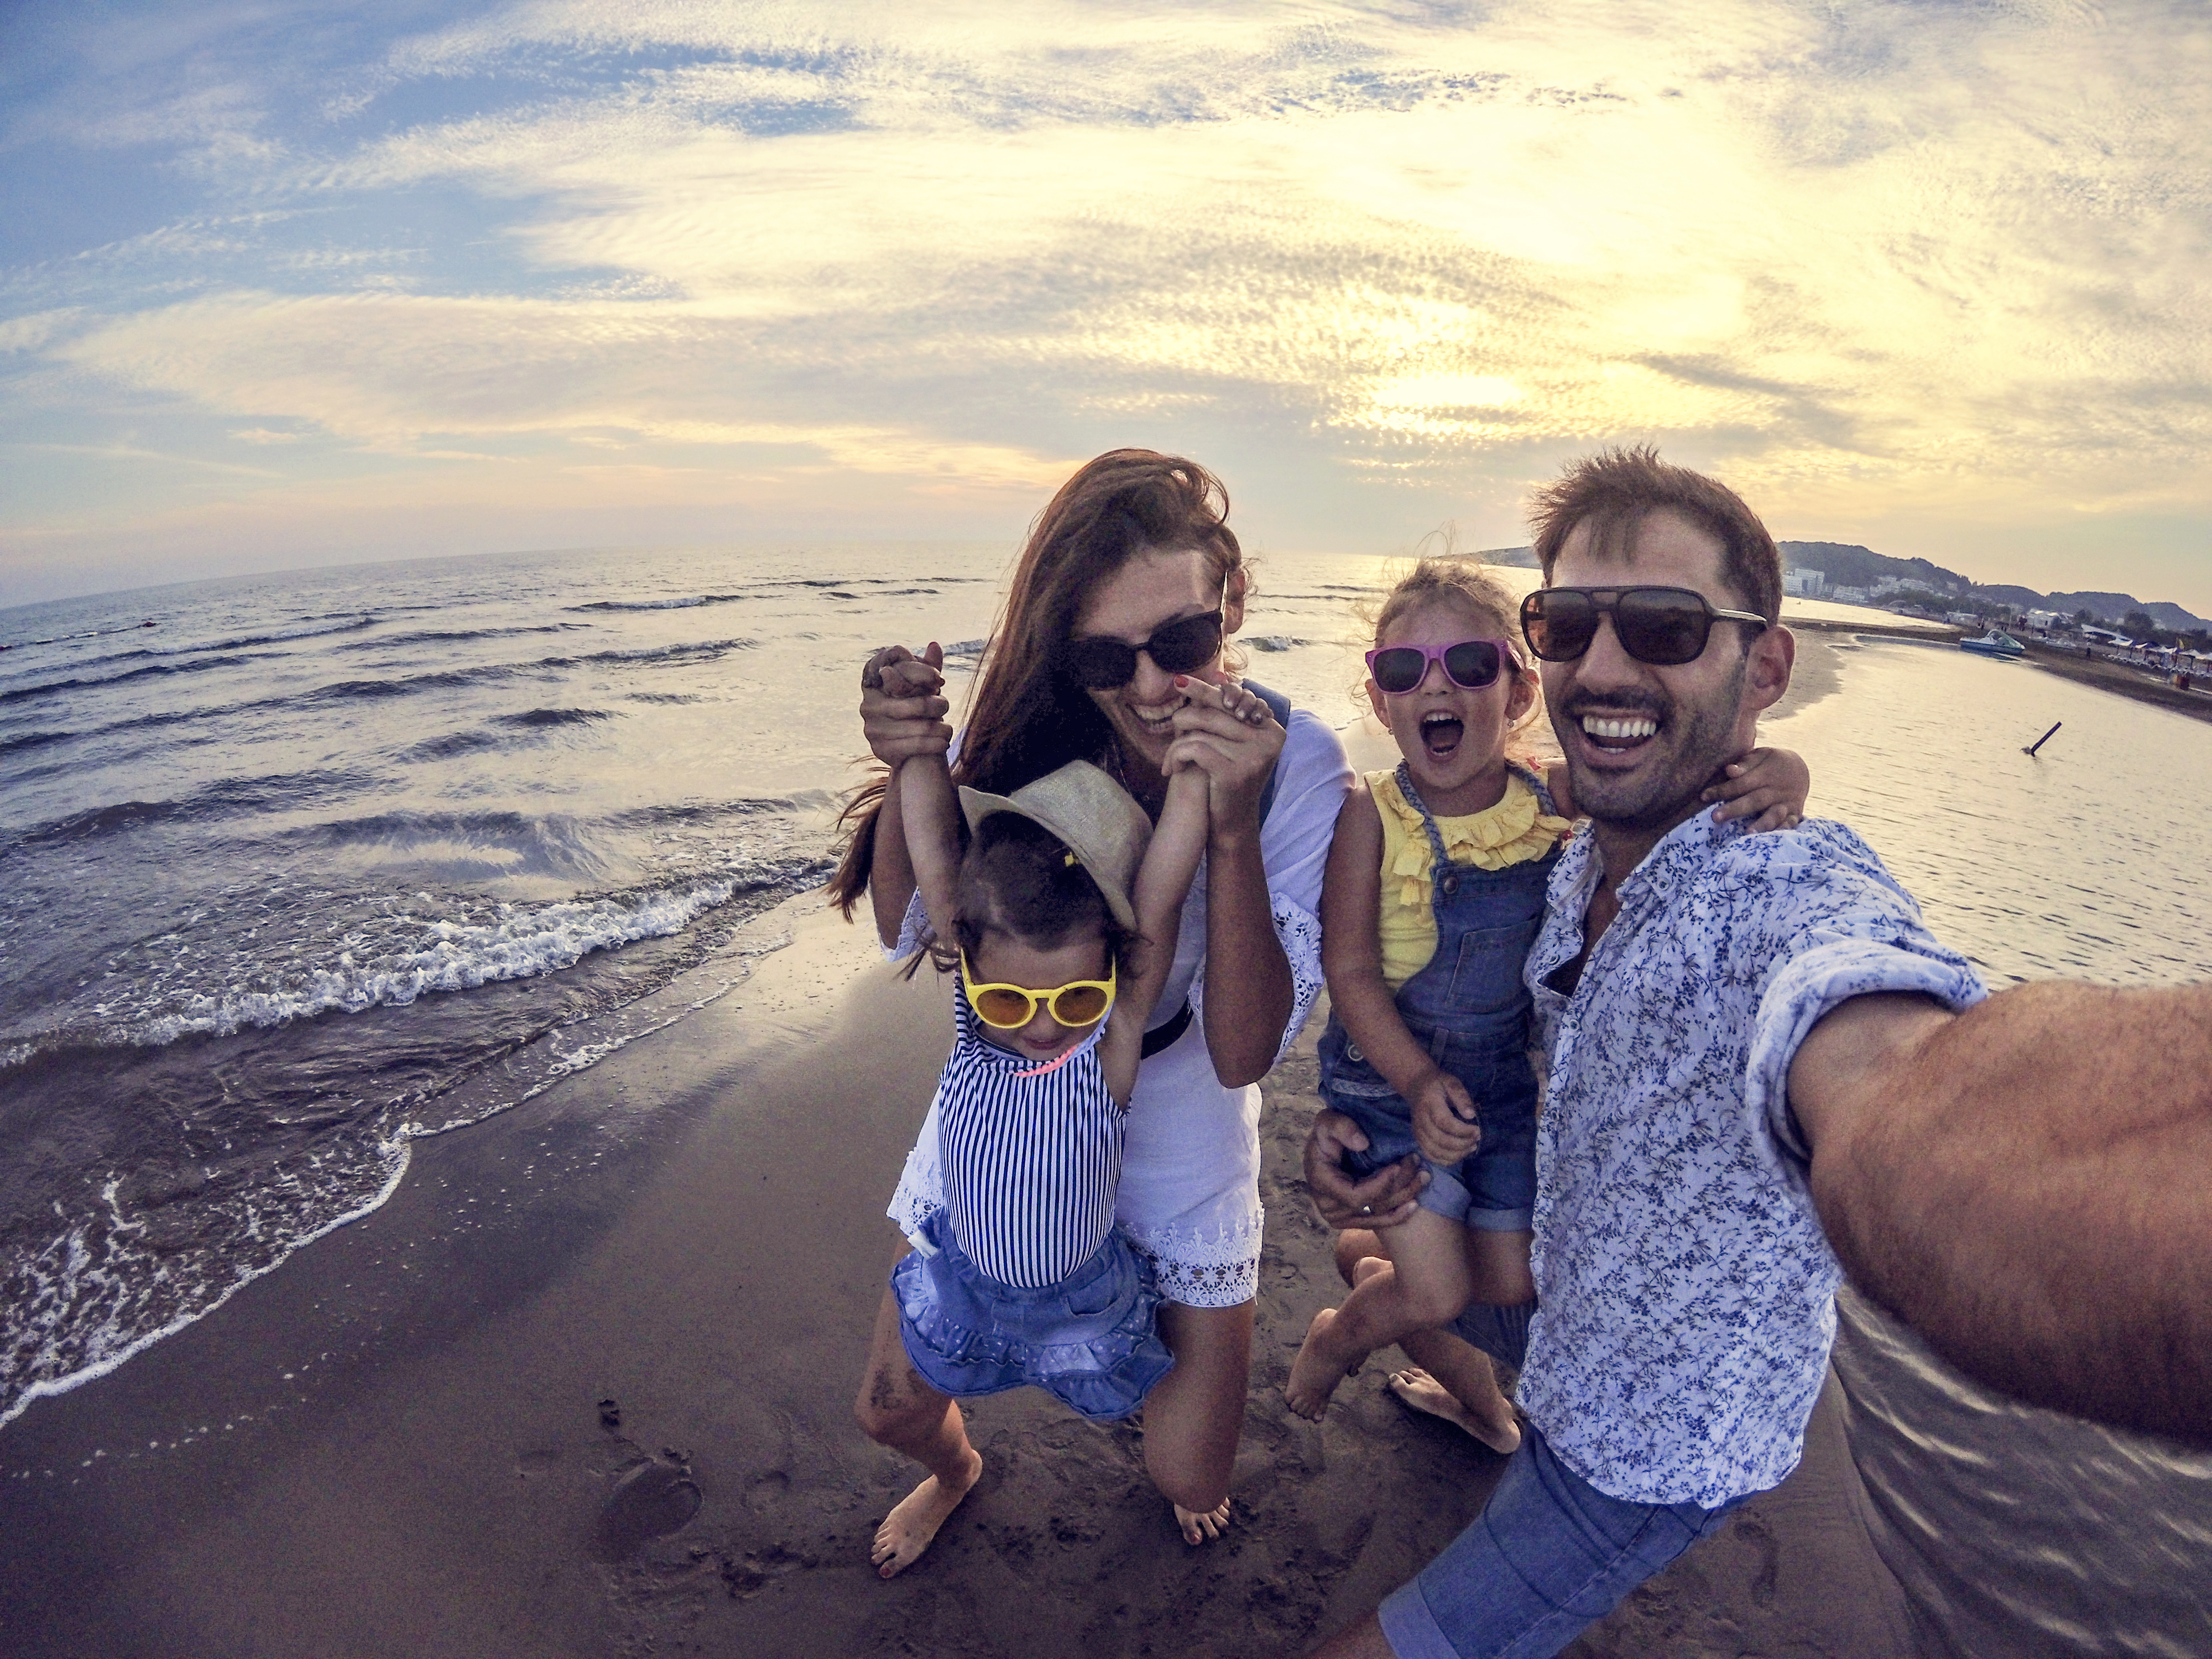 Family on Vacation   First Alliance Credit Union